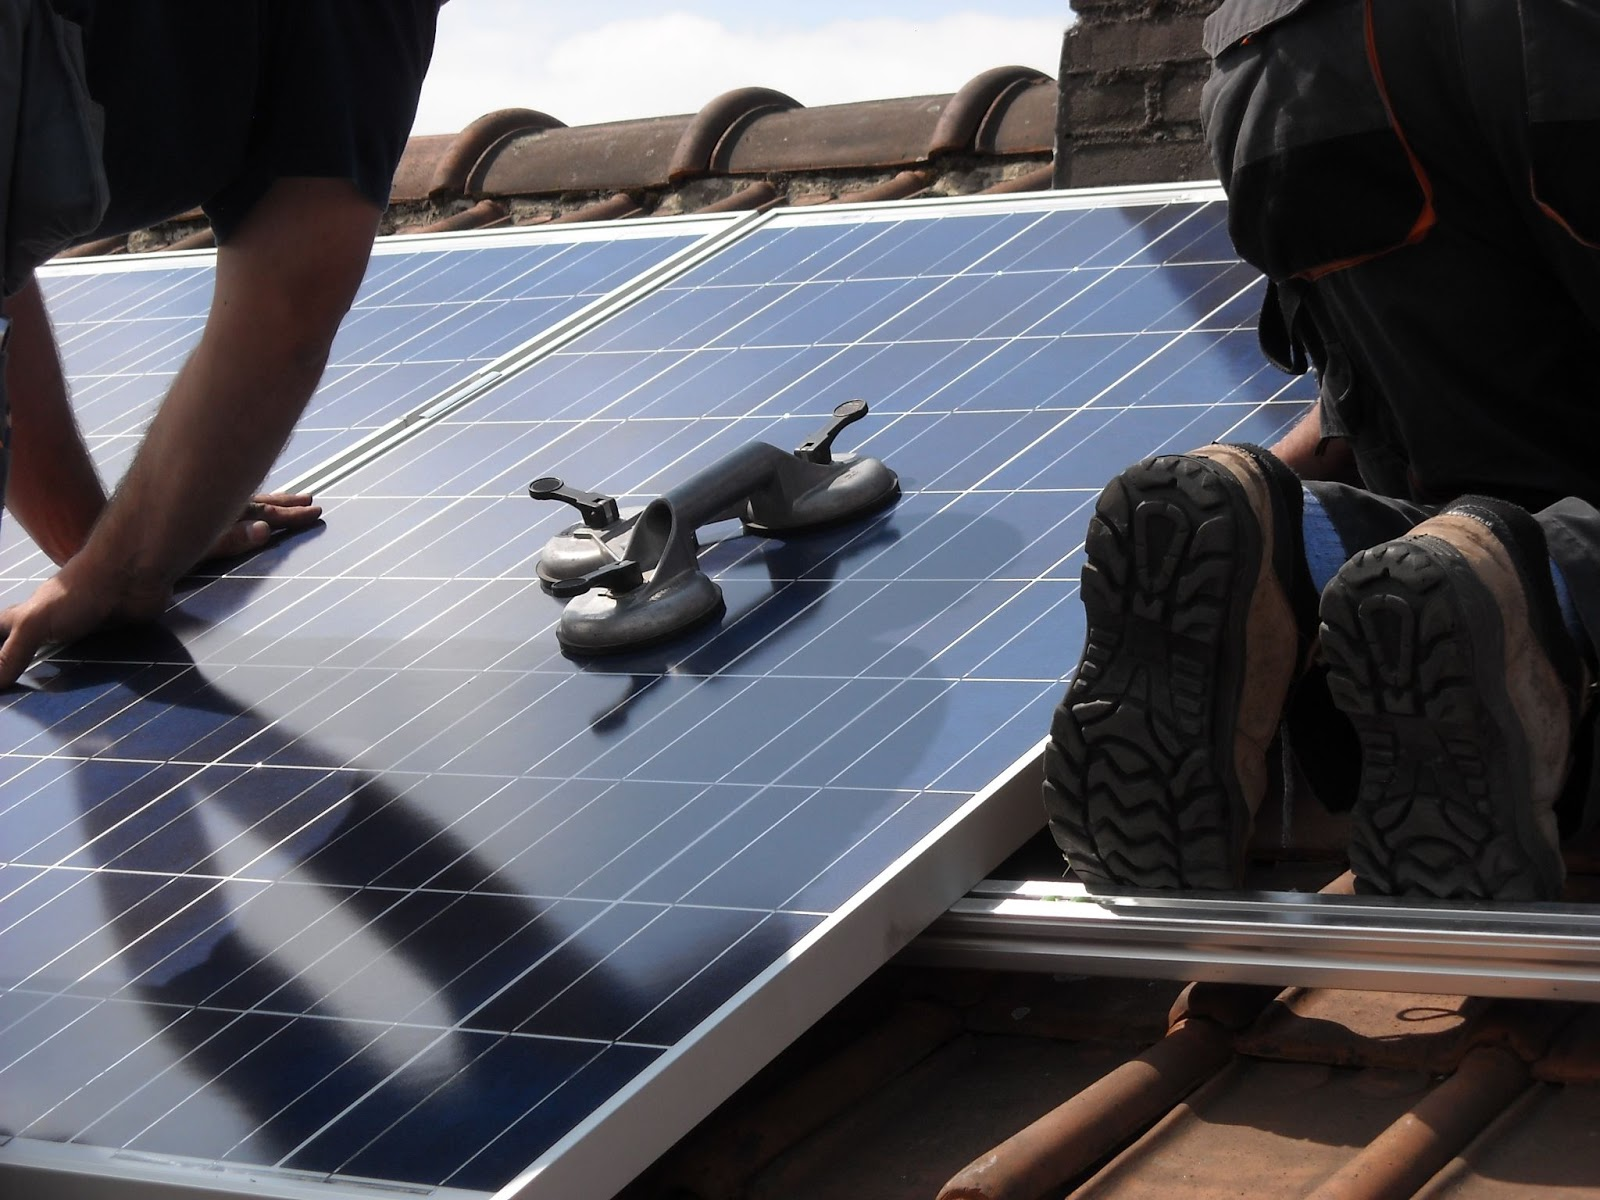 technicians installing solar panels on a roof